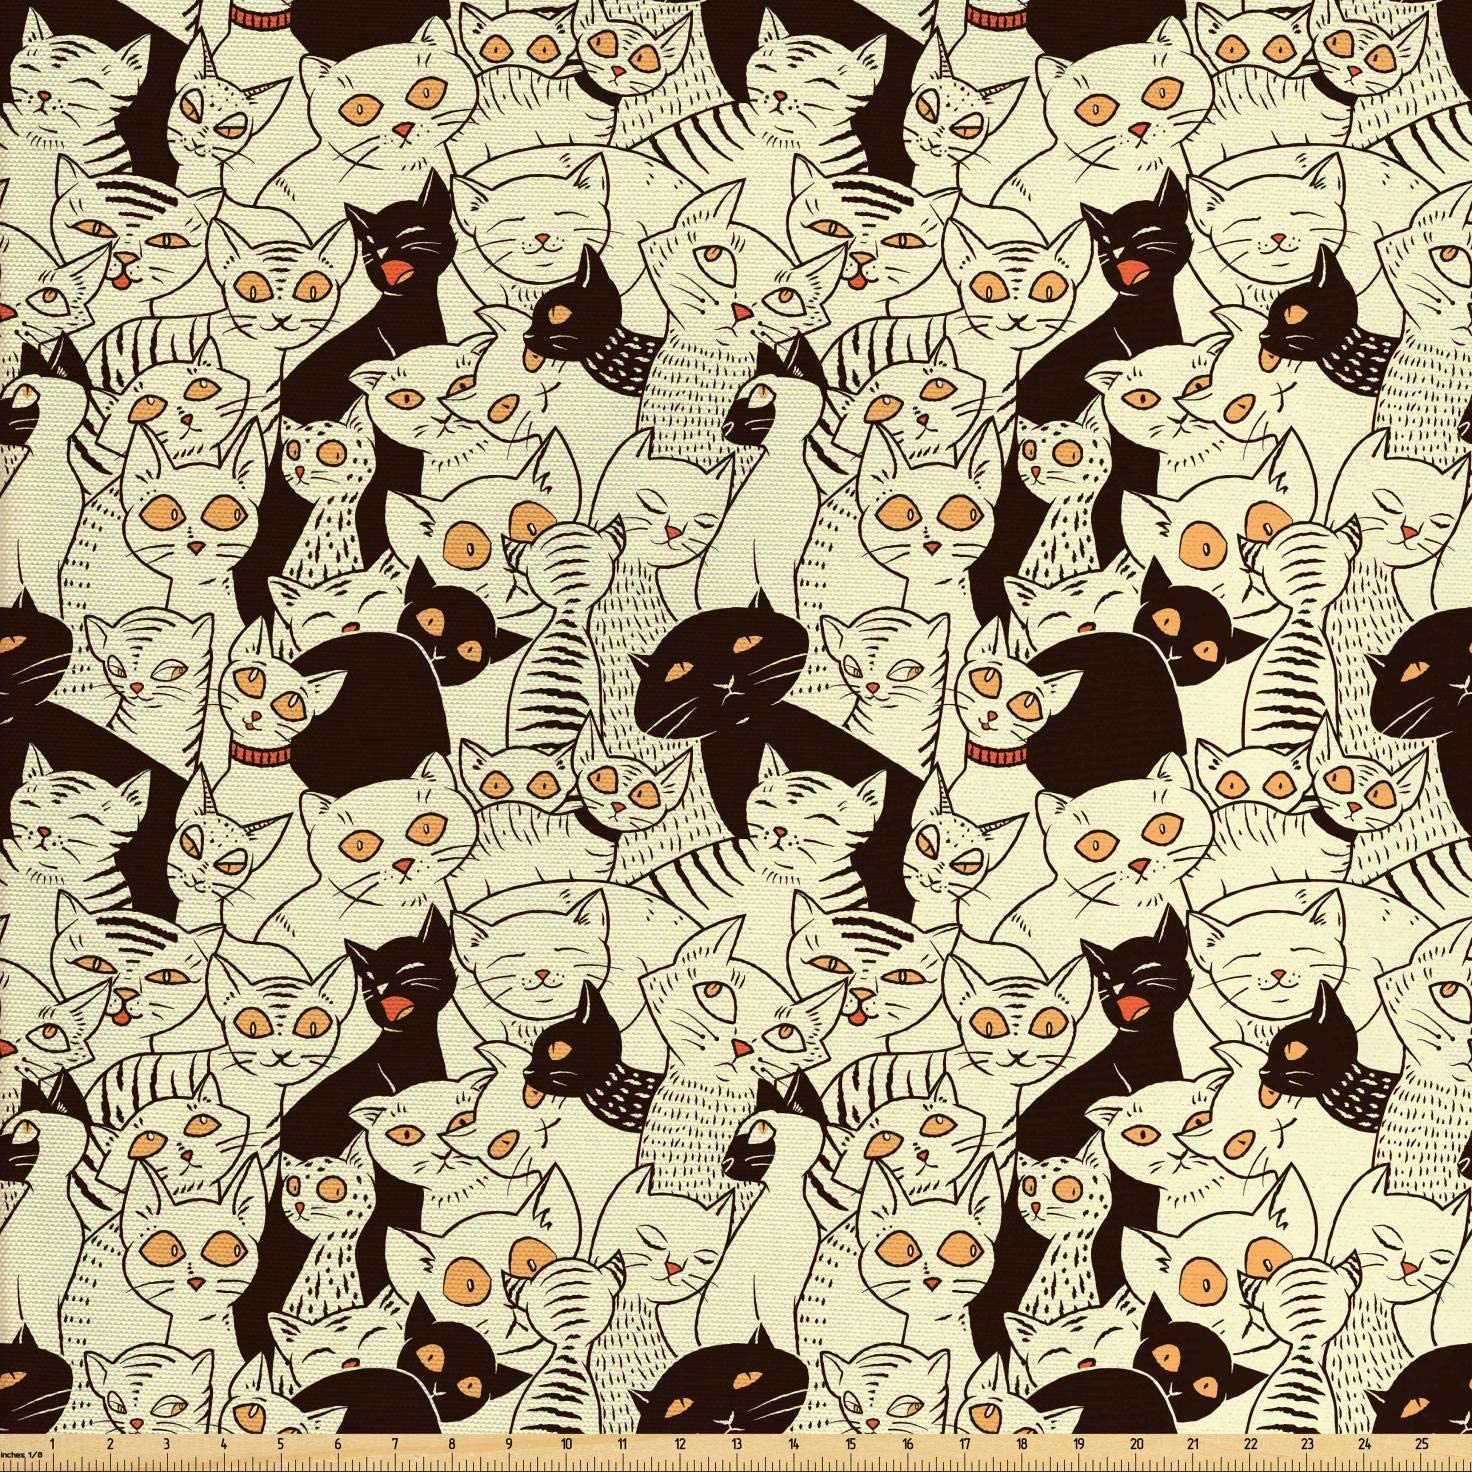 Lunarable Cat Fabric by The Yard, Modern Big Eyed Funk Style Kitties with Retro Influences Animal Graphic, Decorative Fabric for Upholstery and Home Accents, 3 Yards, Yellow Black